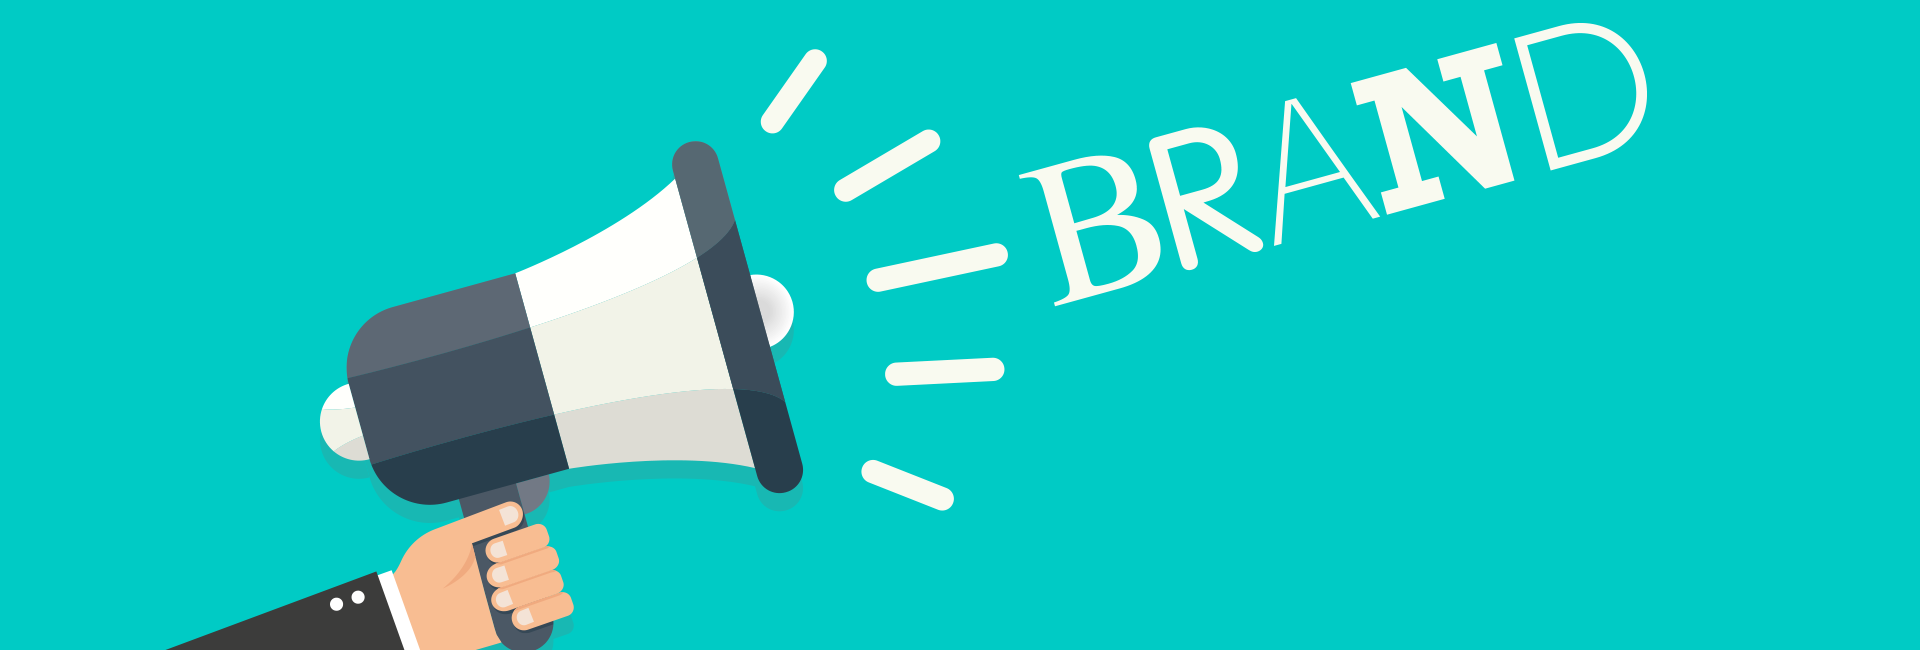 Why finding your brand voice should be a top priority